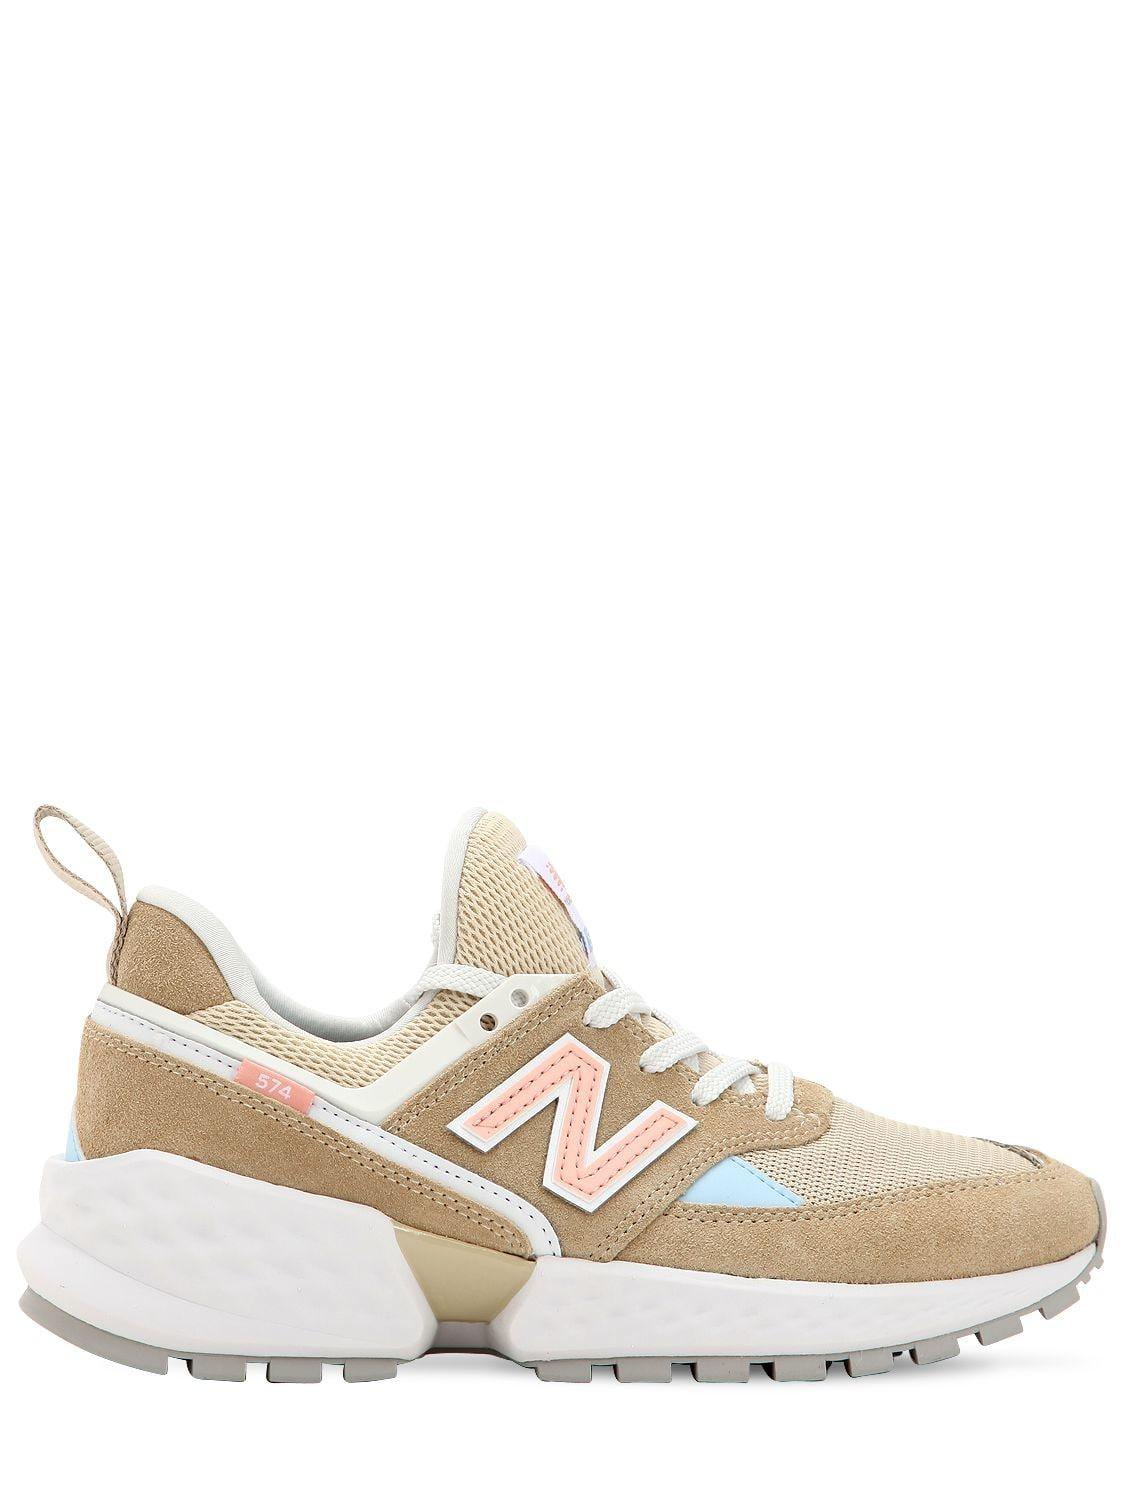 3358e877df63b Lyst - New Balance 574 Sneakers in Natural